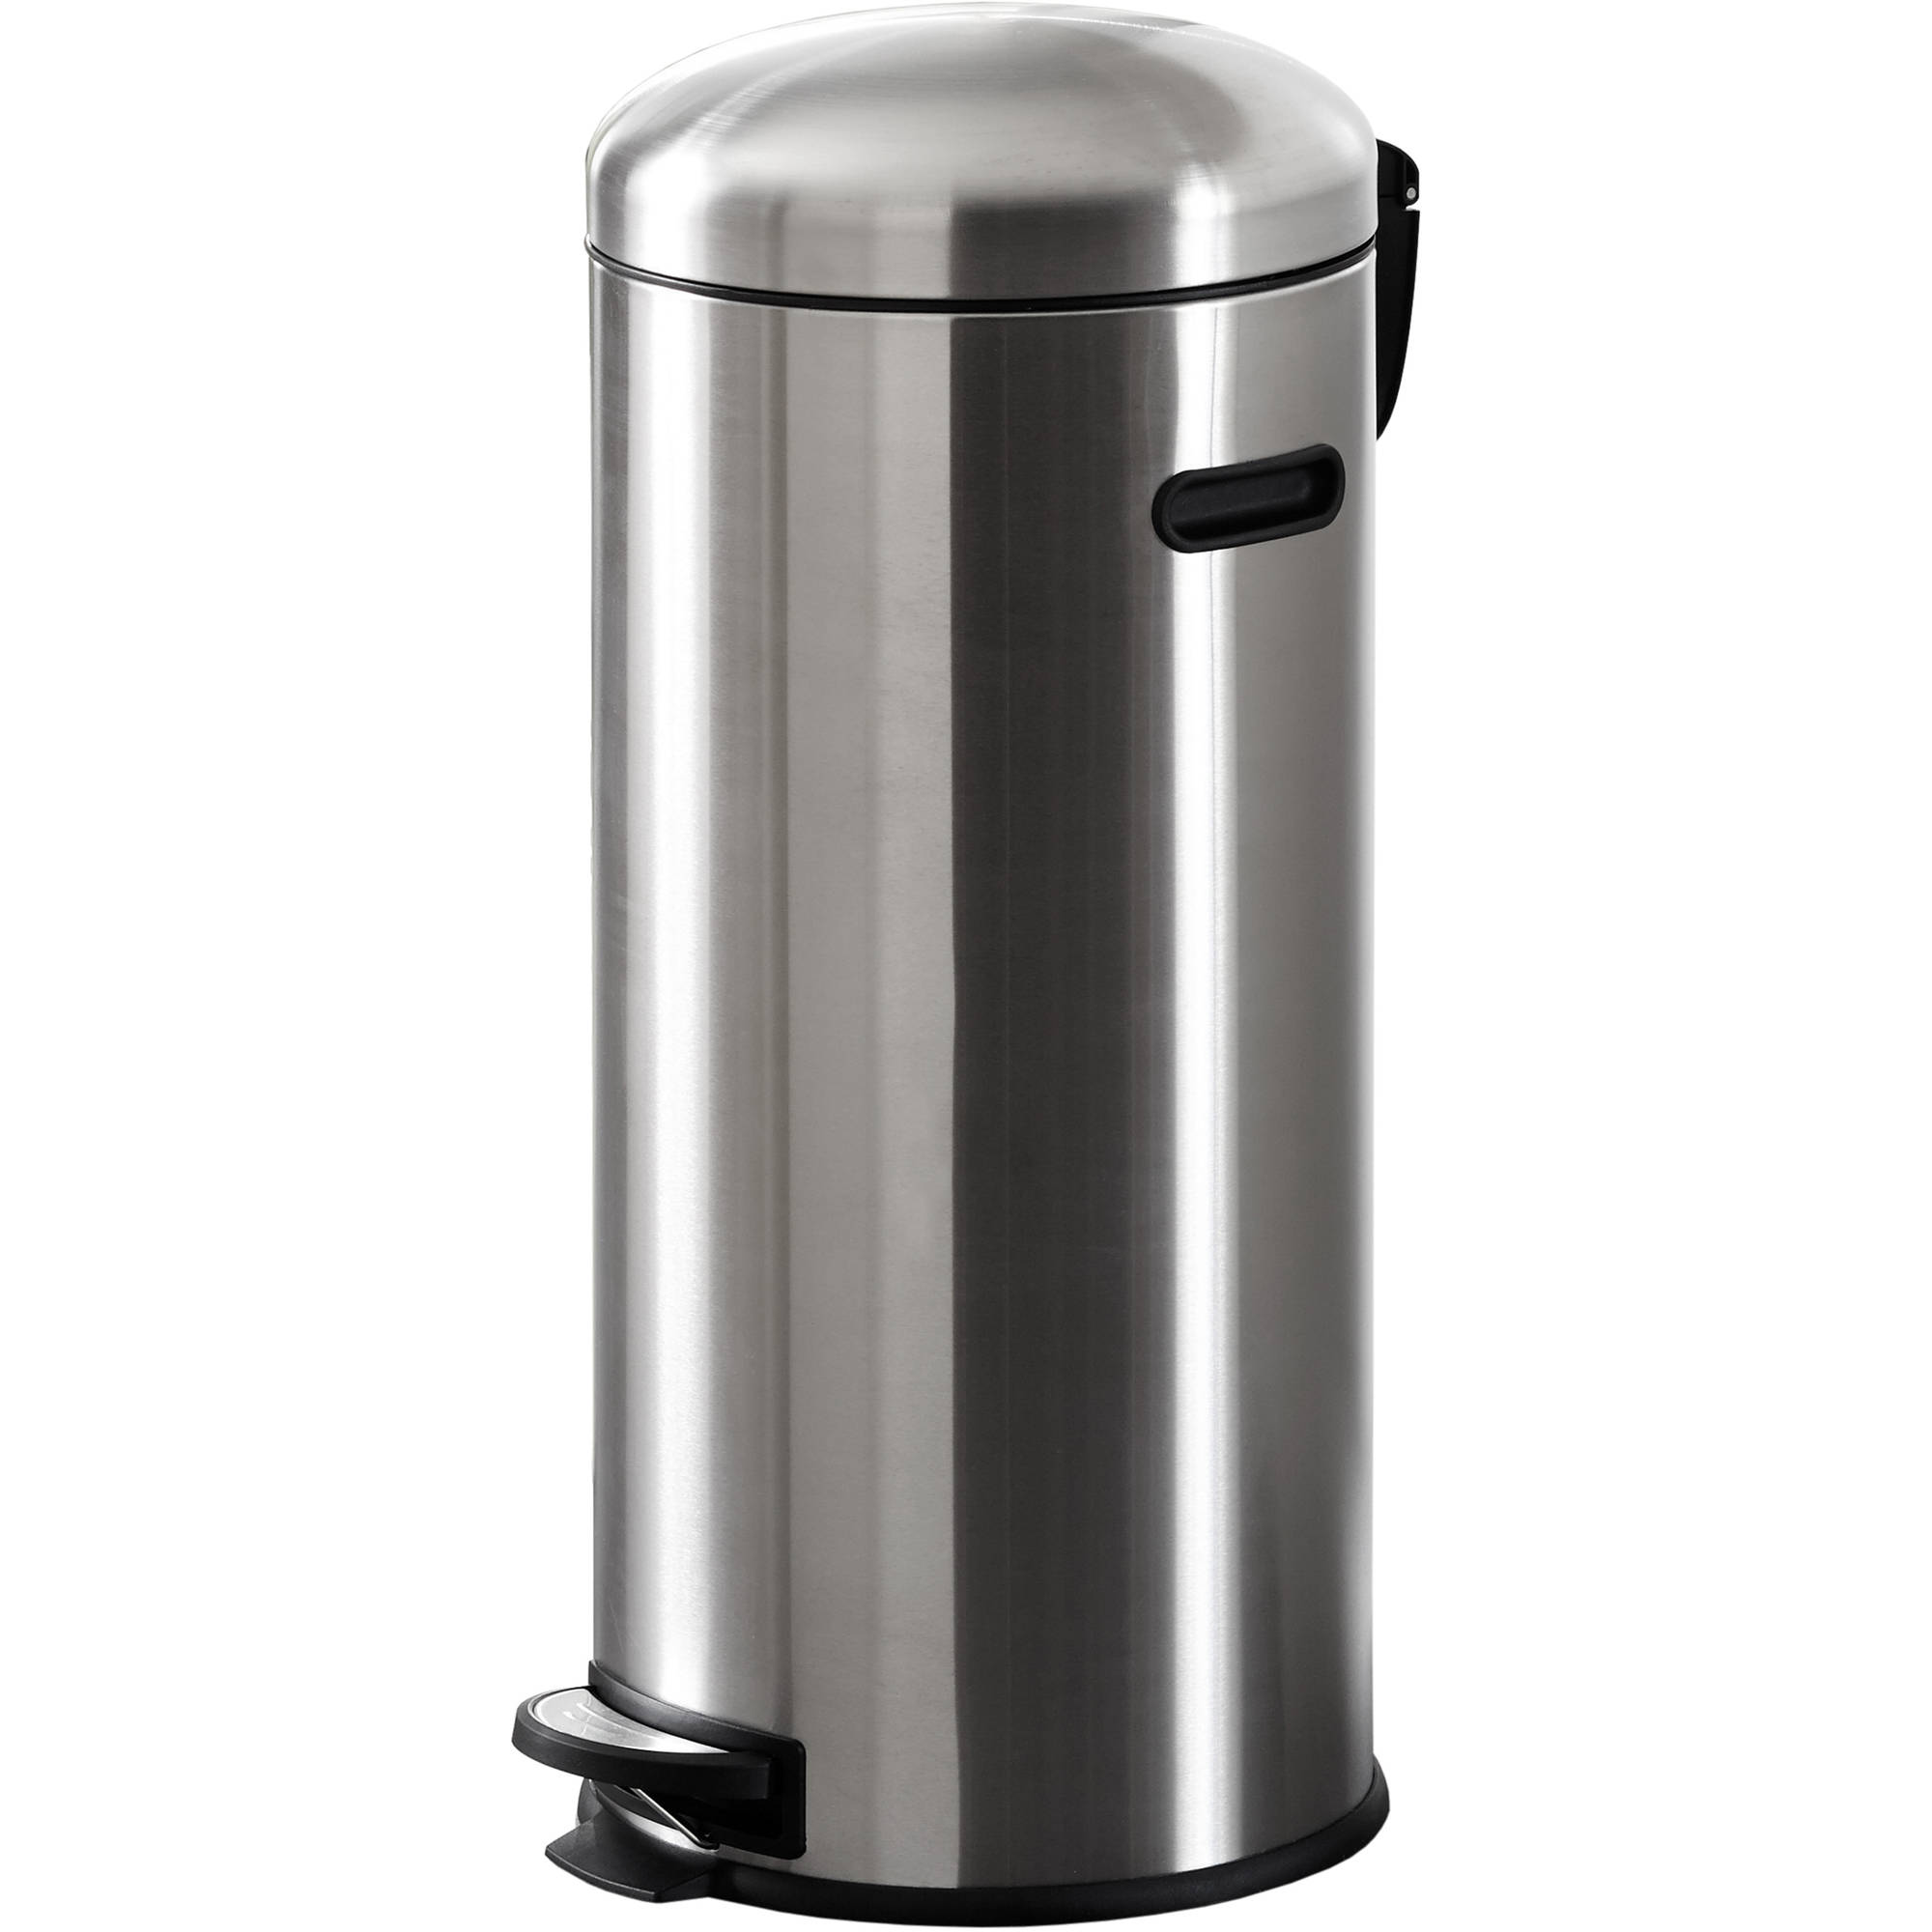 better homes and gardens 30l retro trash can, stainless steel